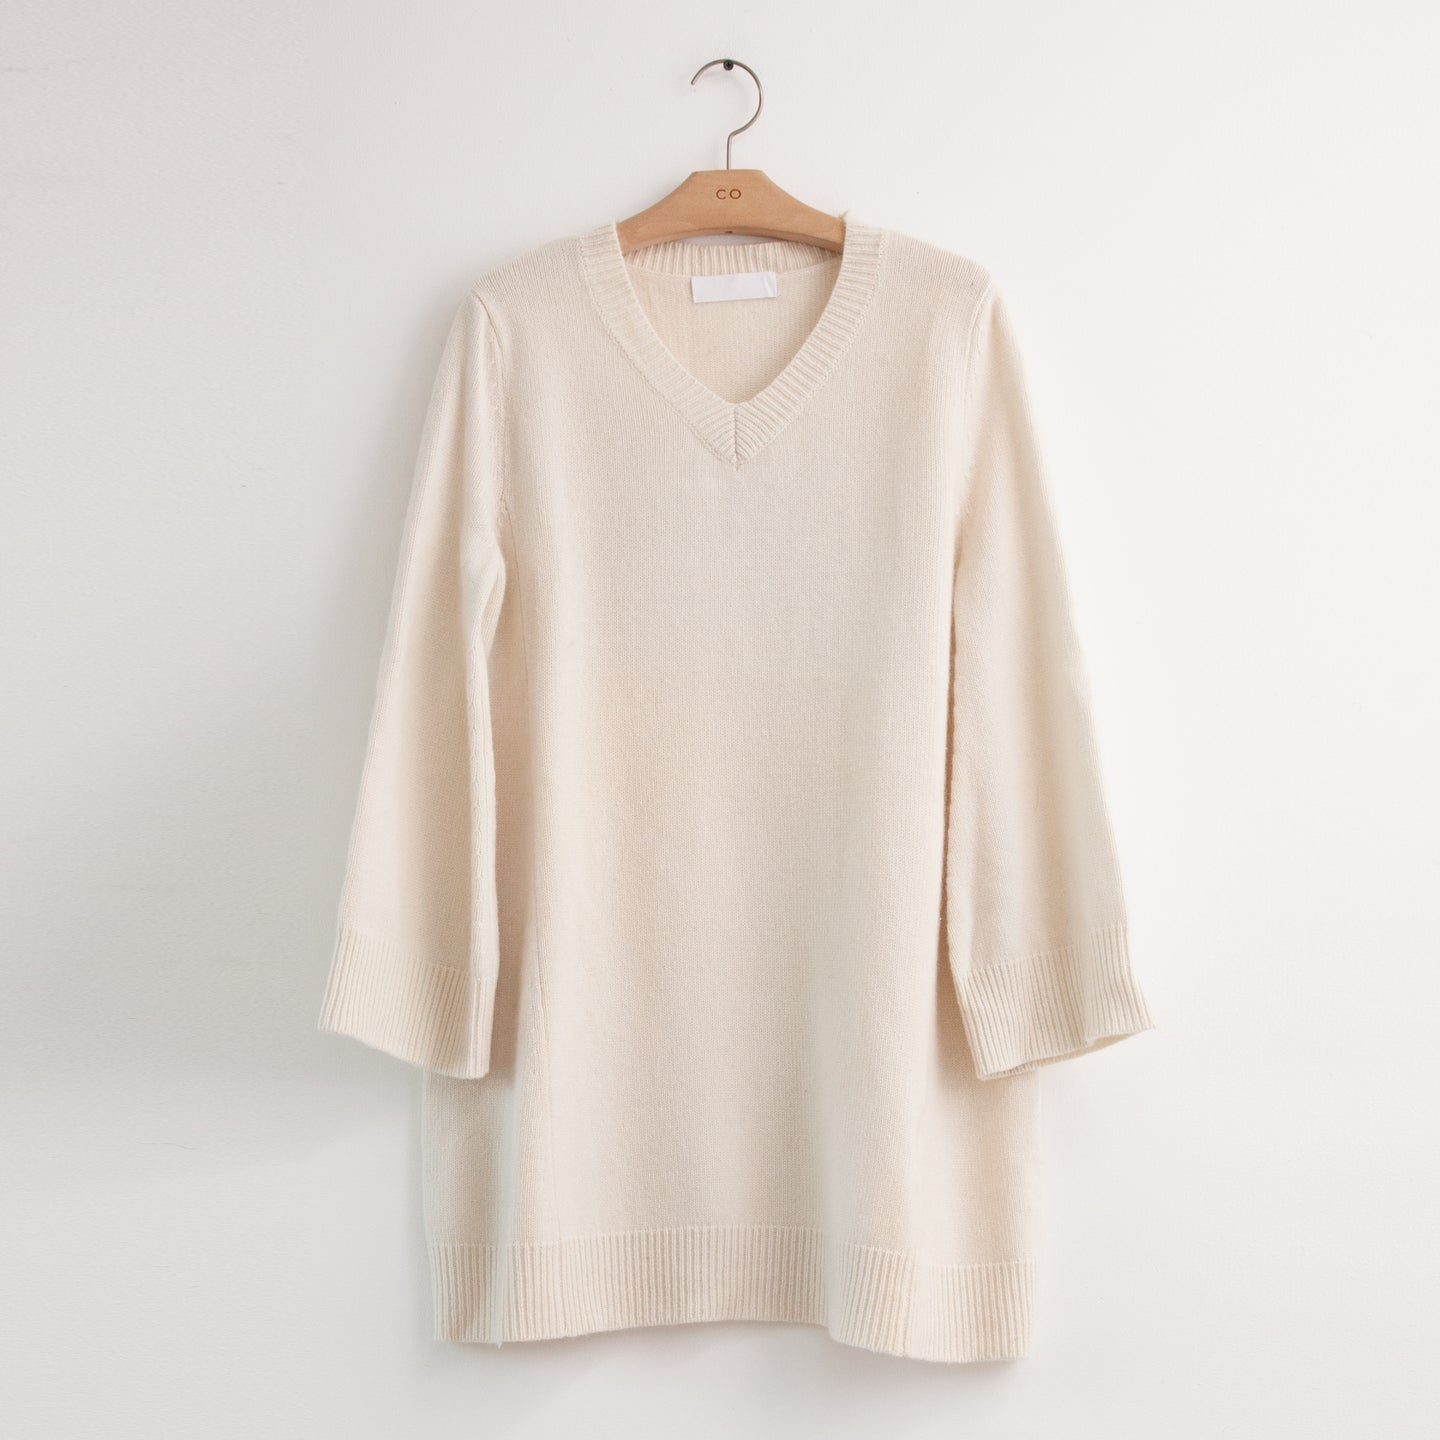 CO - Oversized v neck tunic sweater in wool cashmere